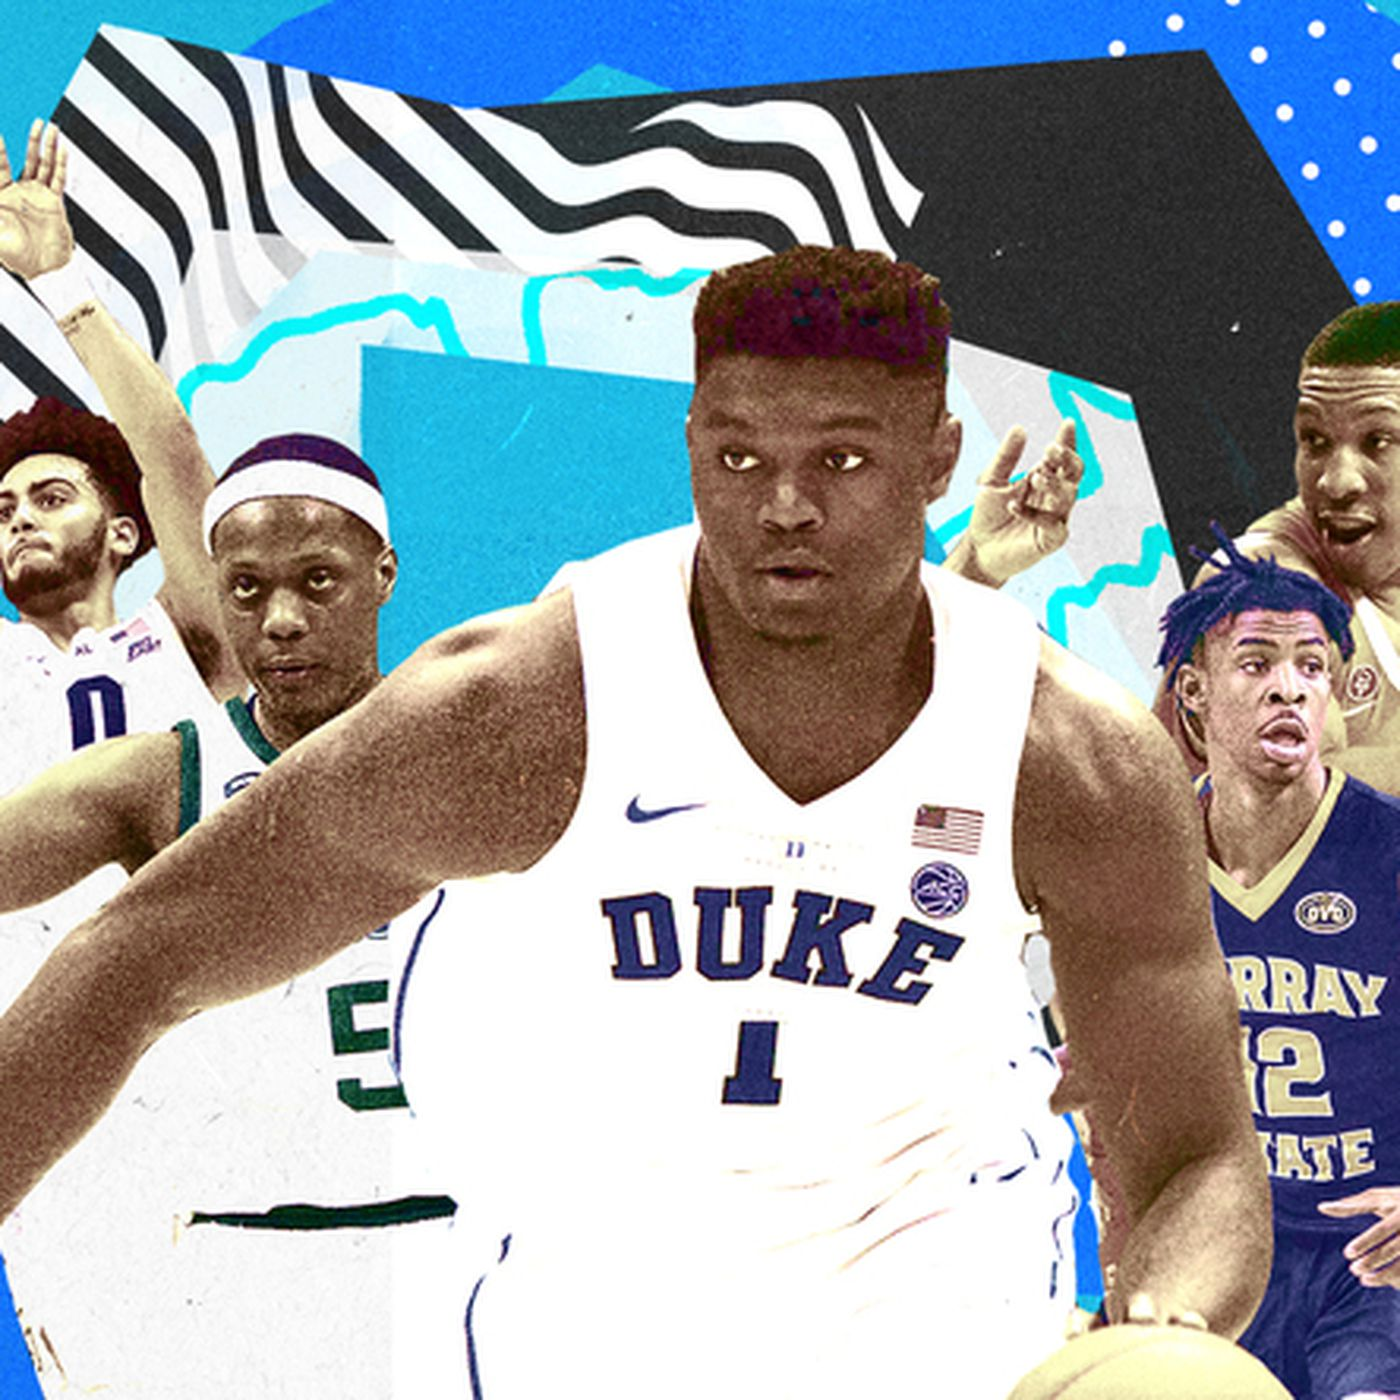 6399745eaa9 March Madness 2019: Top 50 players in the NCAA tournament - SBNation.com